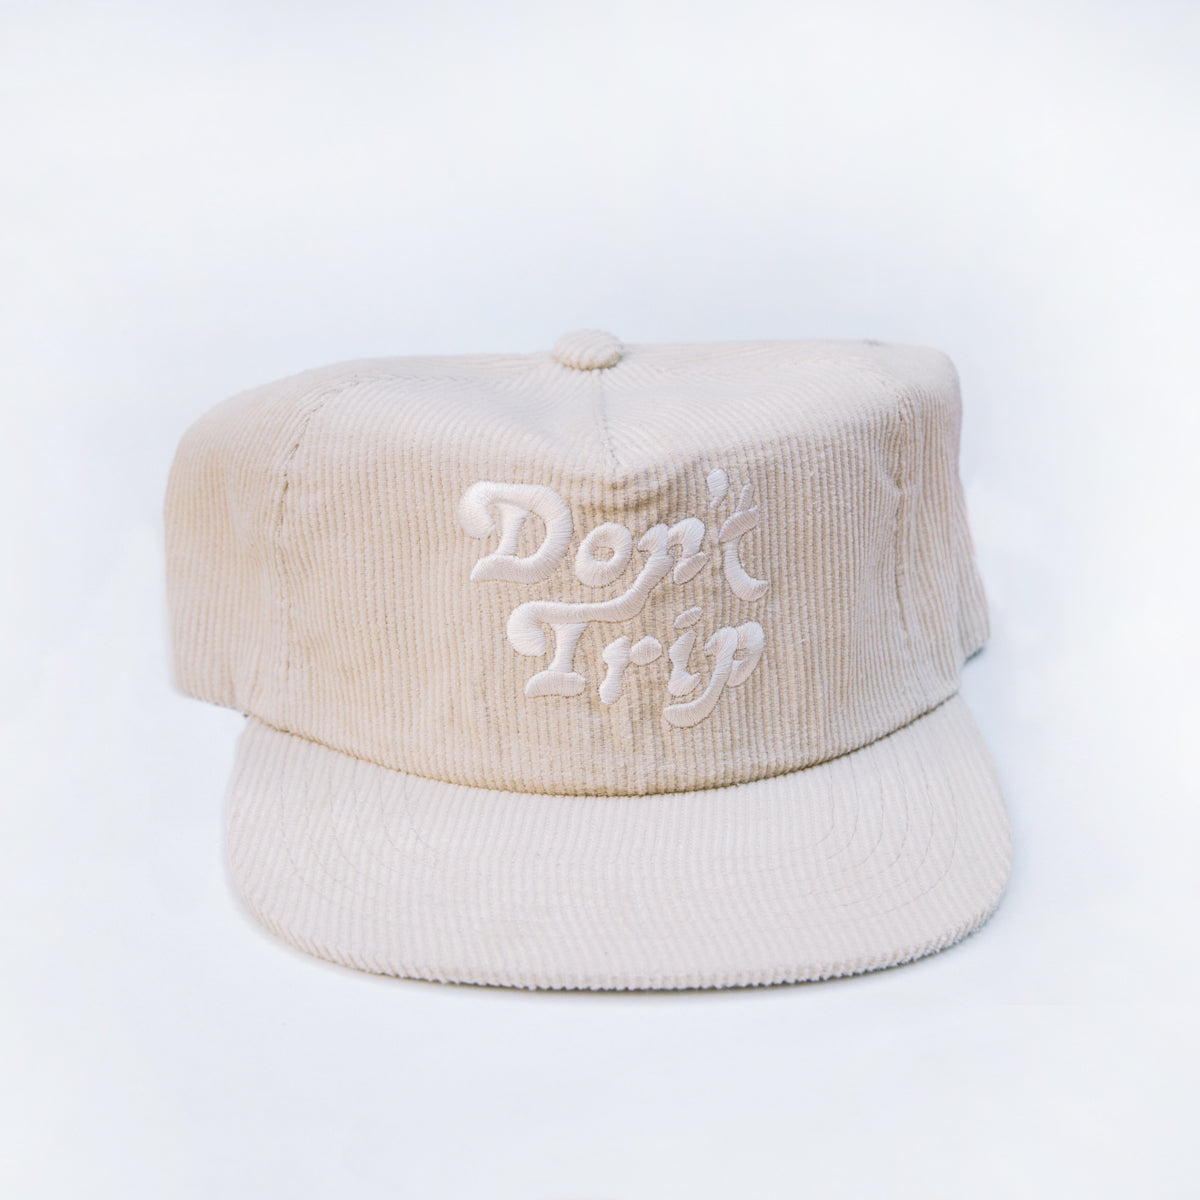 Free & Easy- Don't Trip Corduroy Hat in Cream